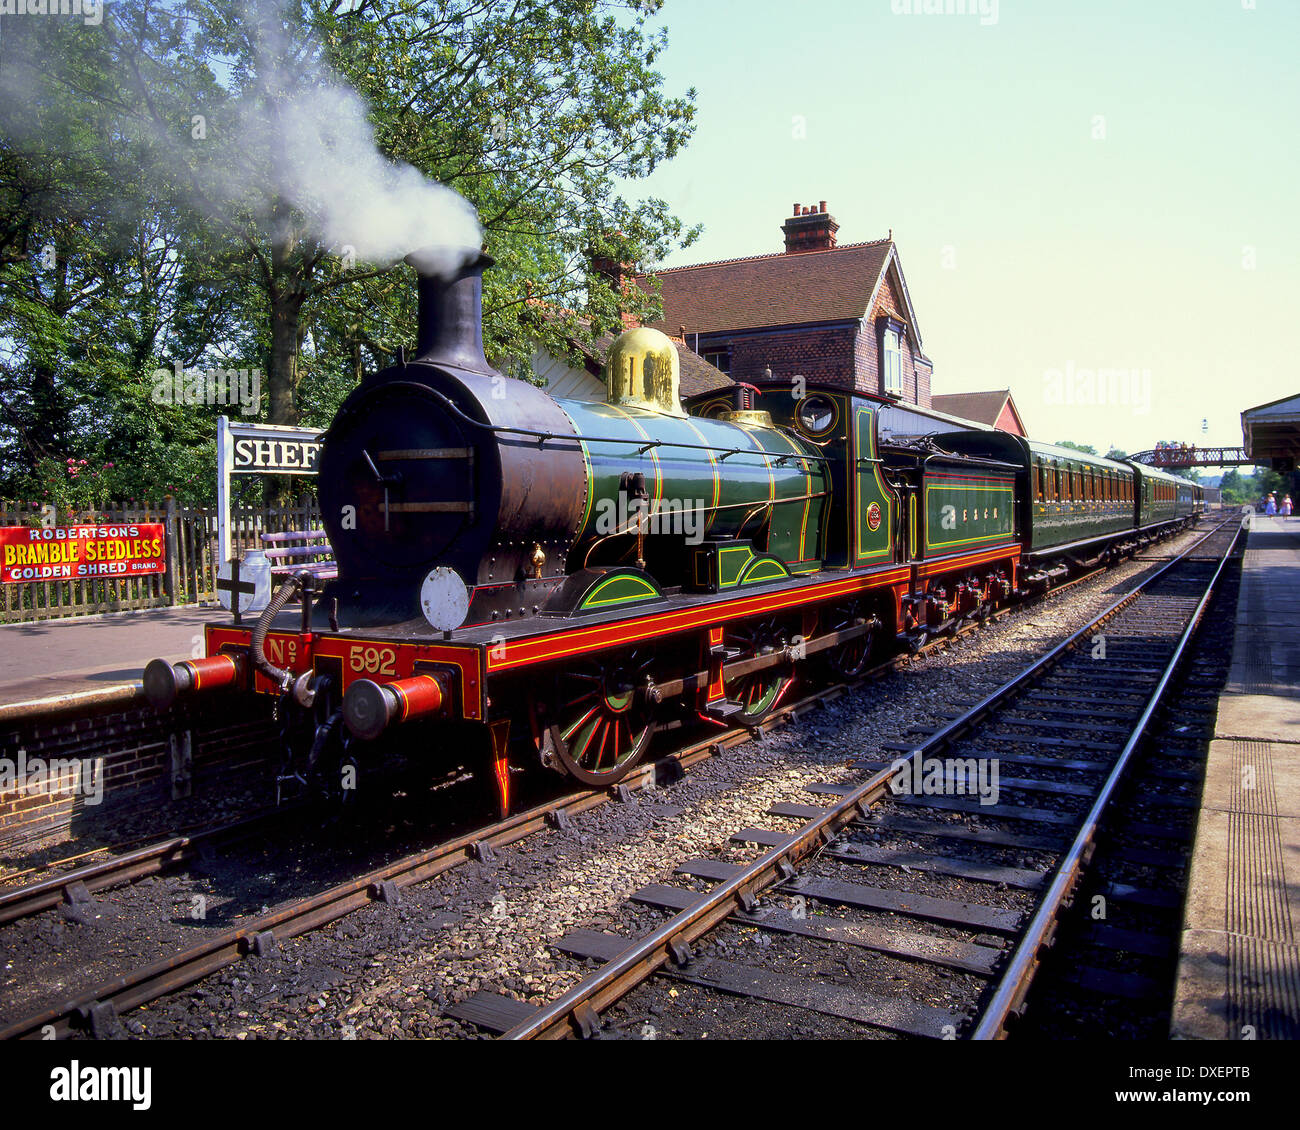 A  Wainwright C Class steam train 0-6-0   sits at Sheffield park station on the Bluebell line Sussex England - Stock Image